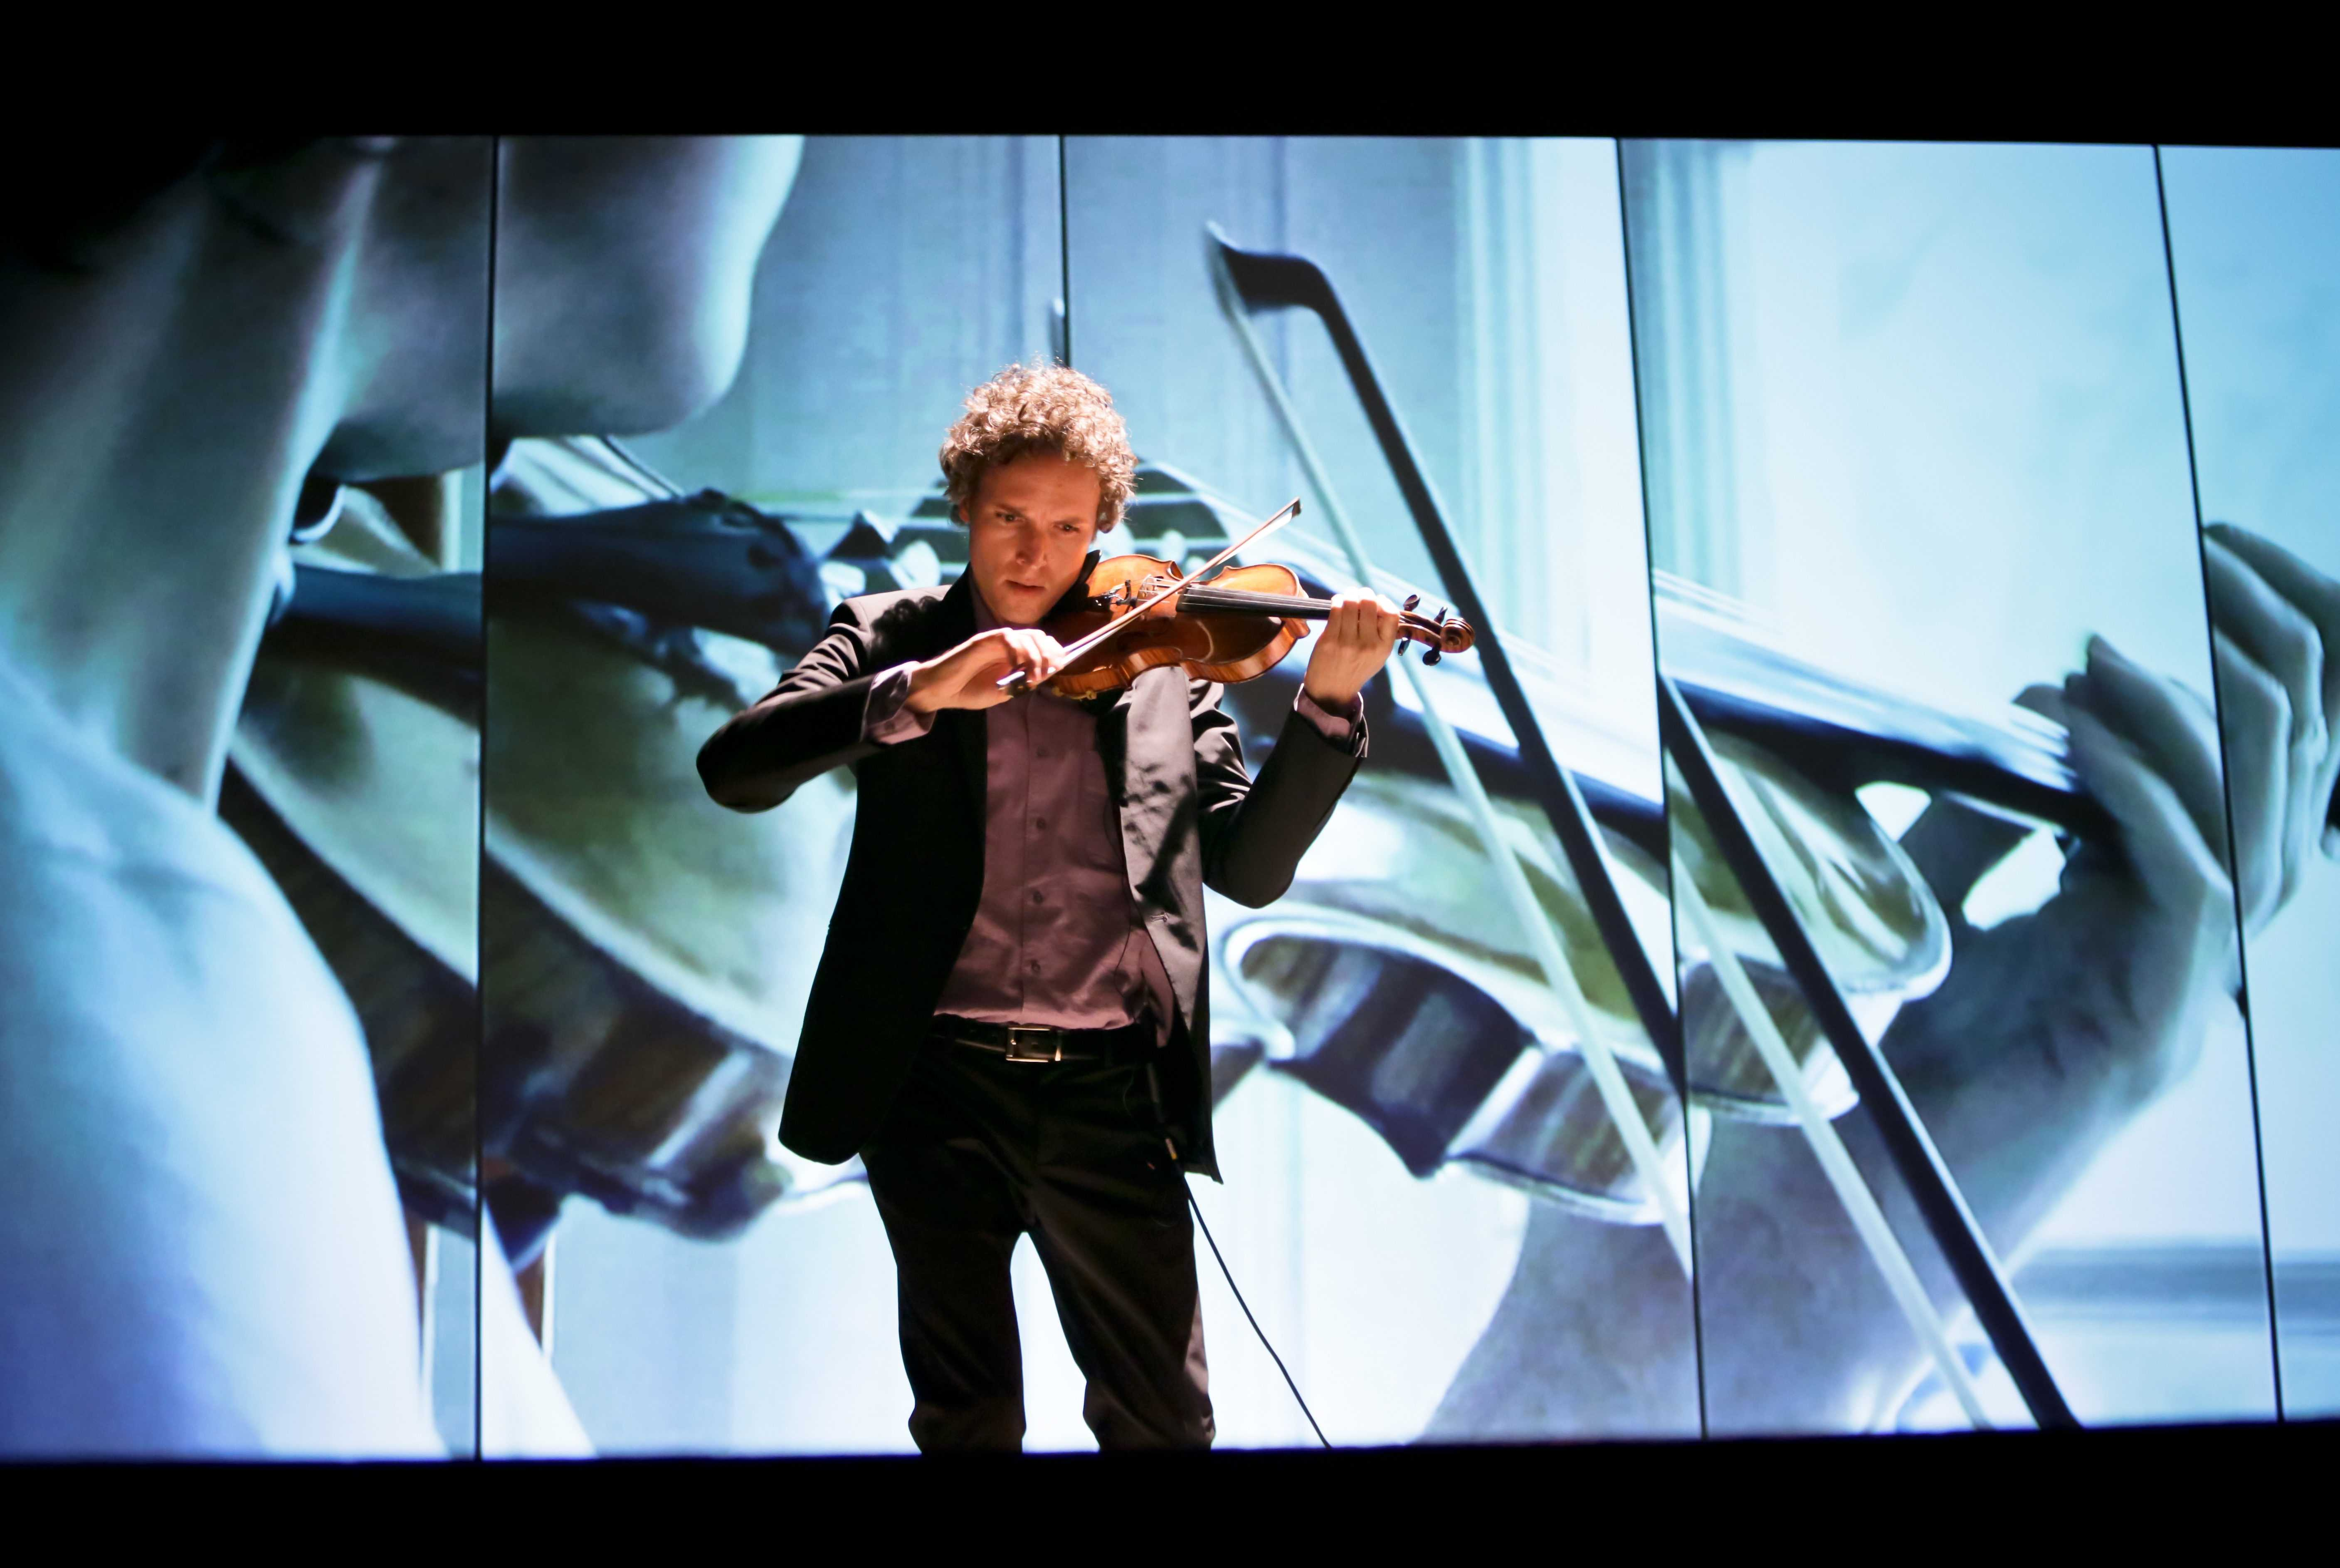 Violinist Tim Fain explores technology through art